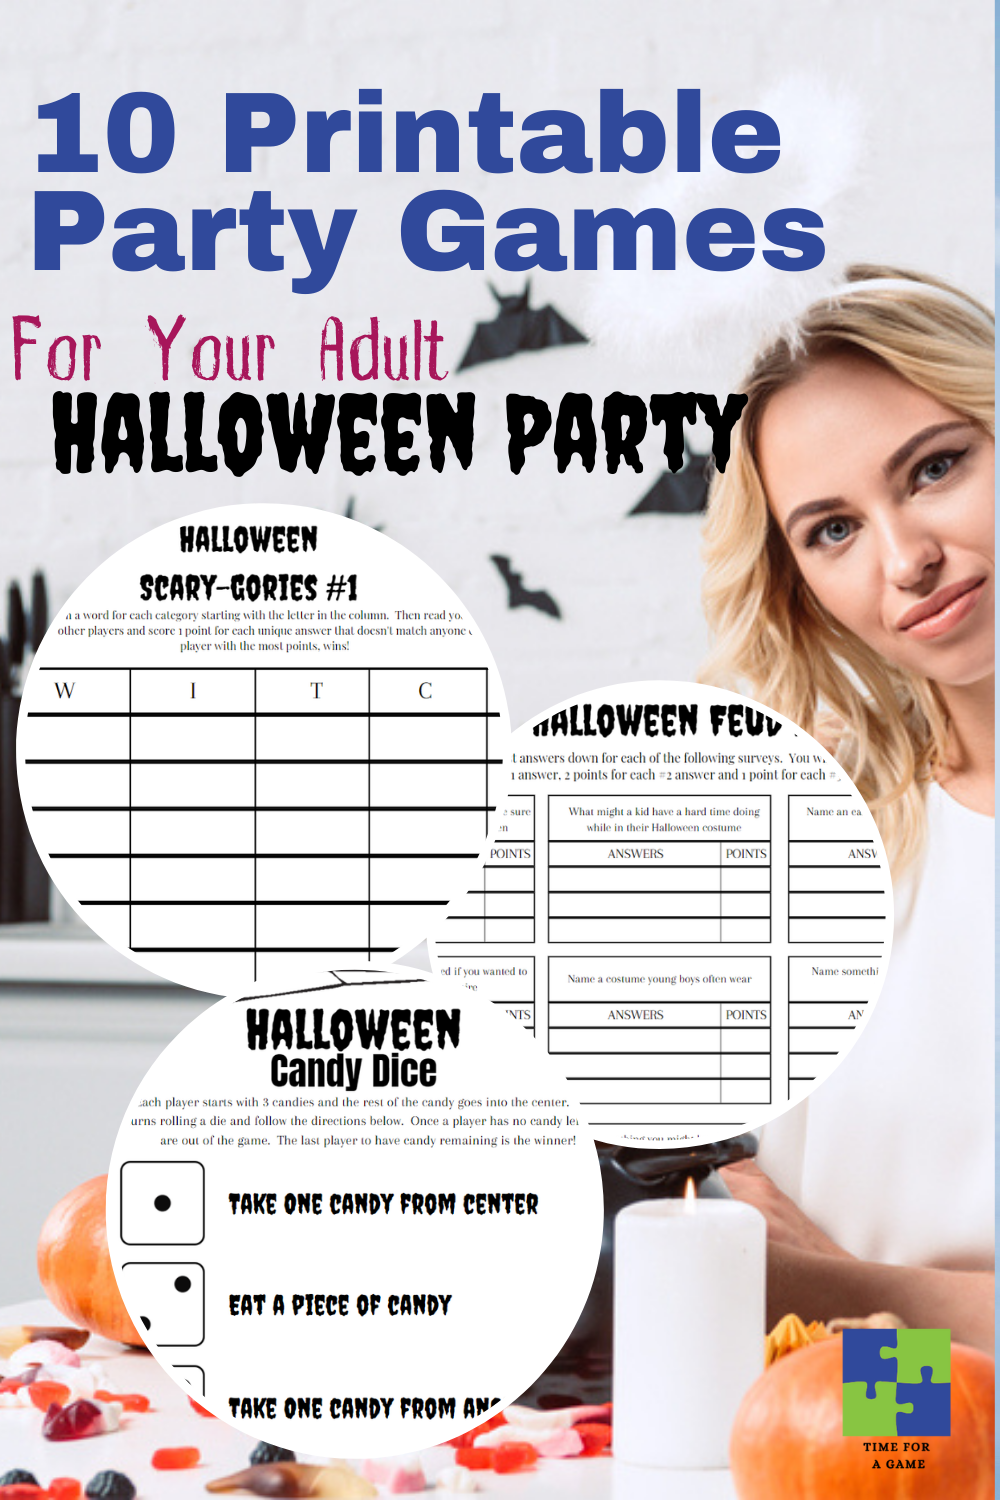 If you are looking for fun games to play at your adult Halloween party, check out these 10 options including Feud and Scary-gories! #Halloween #Halloweenparty #partygames #printable #printables #Halloweenprintable #Halloweenpartygames